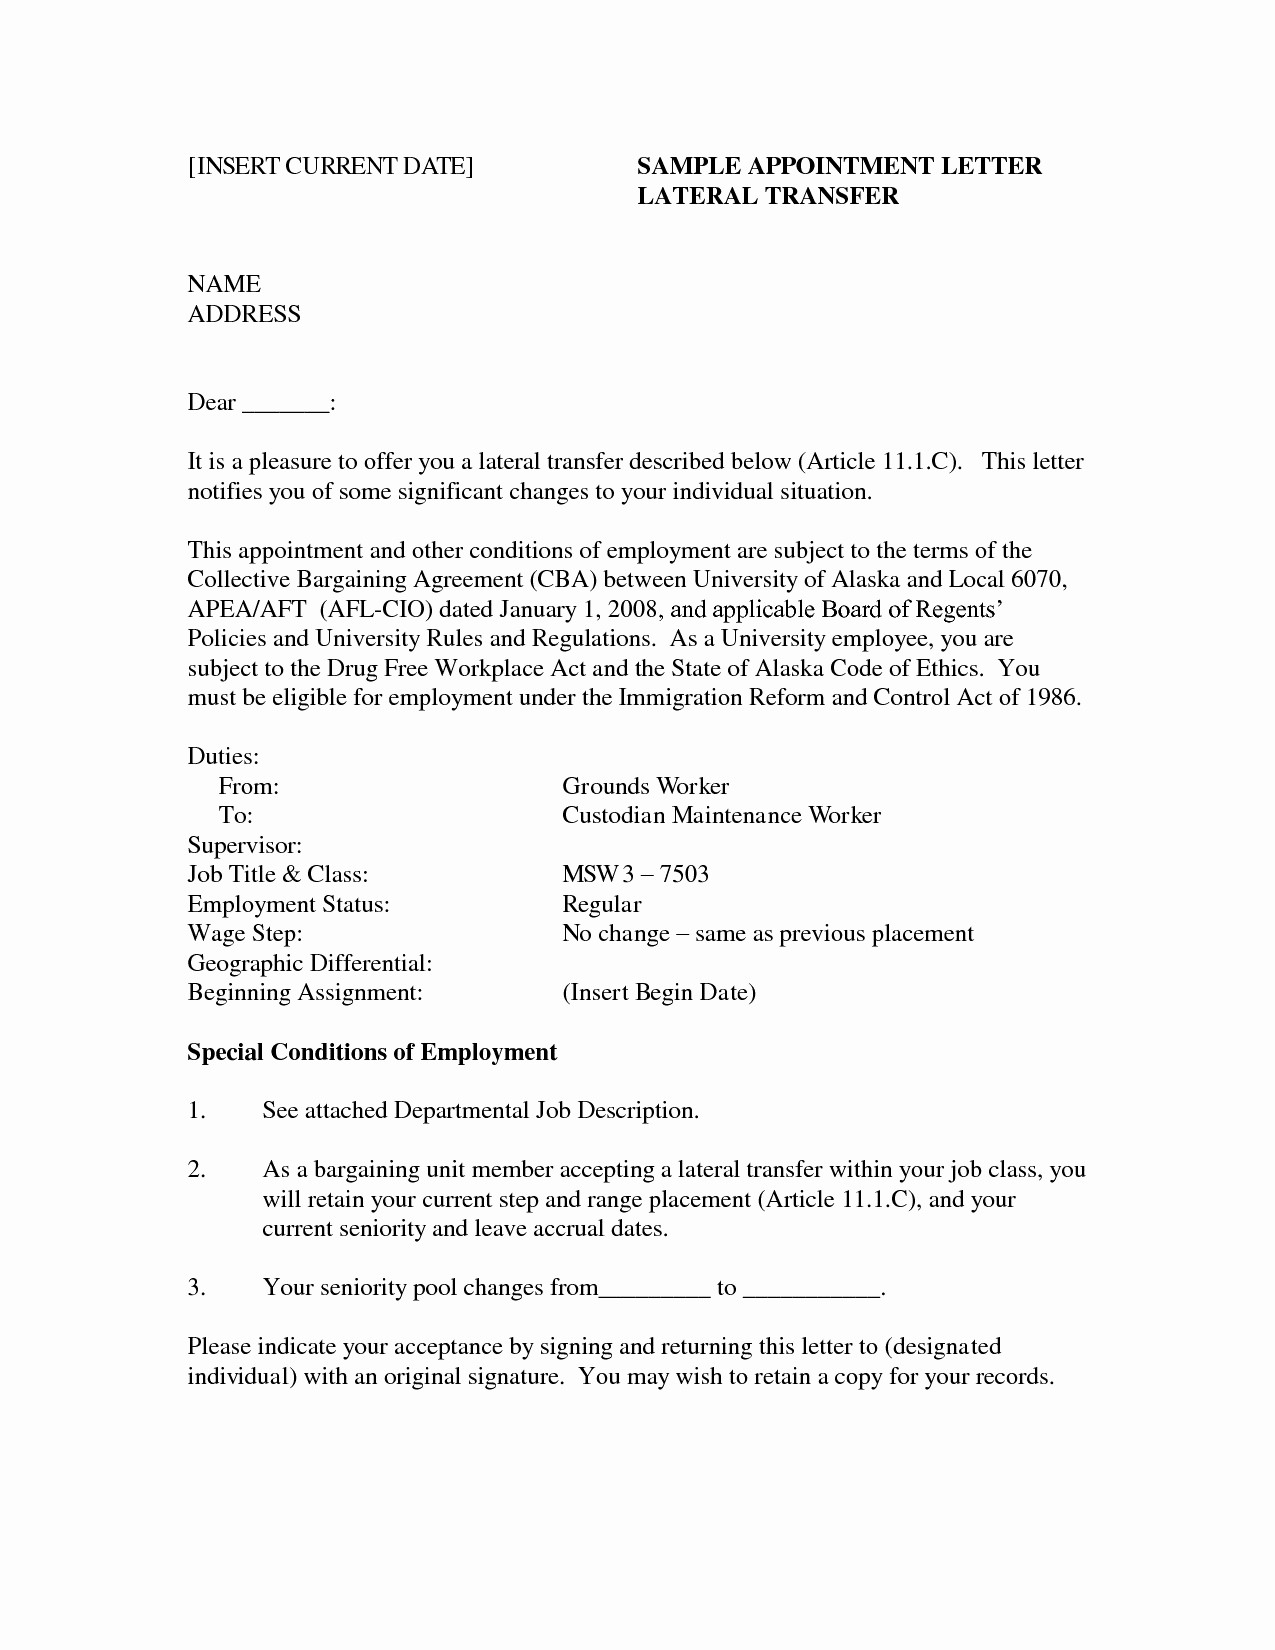 Hipaa Letter Medical Collection Template - Medical Release form Template Luxury Hipaa Release form Template